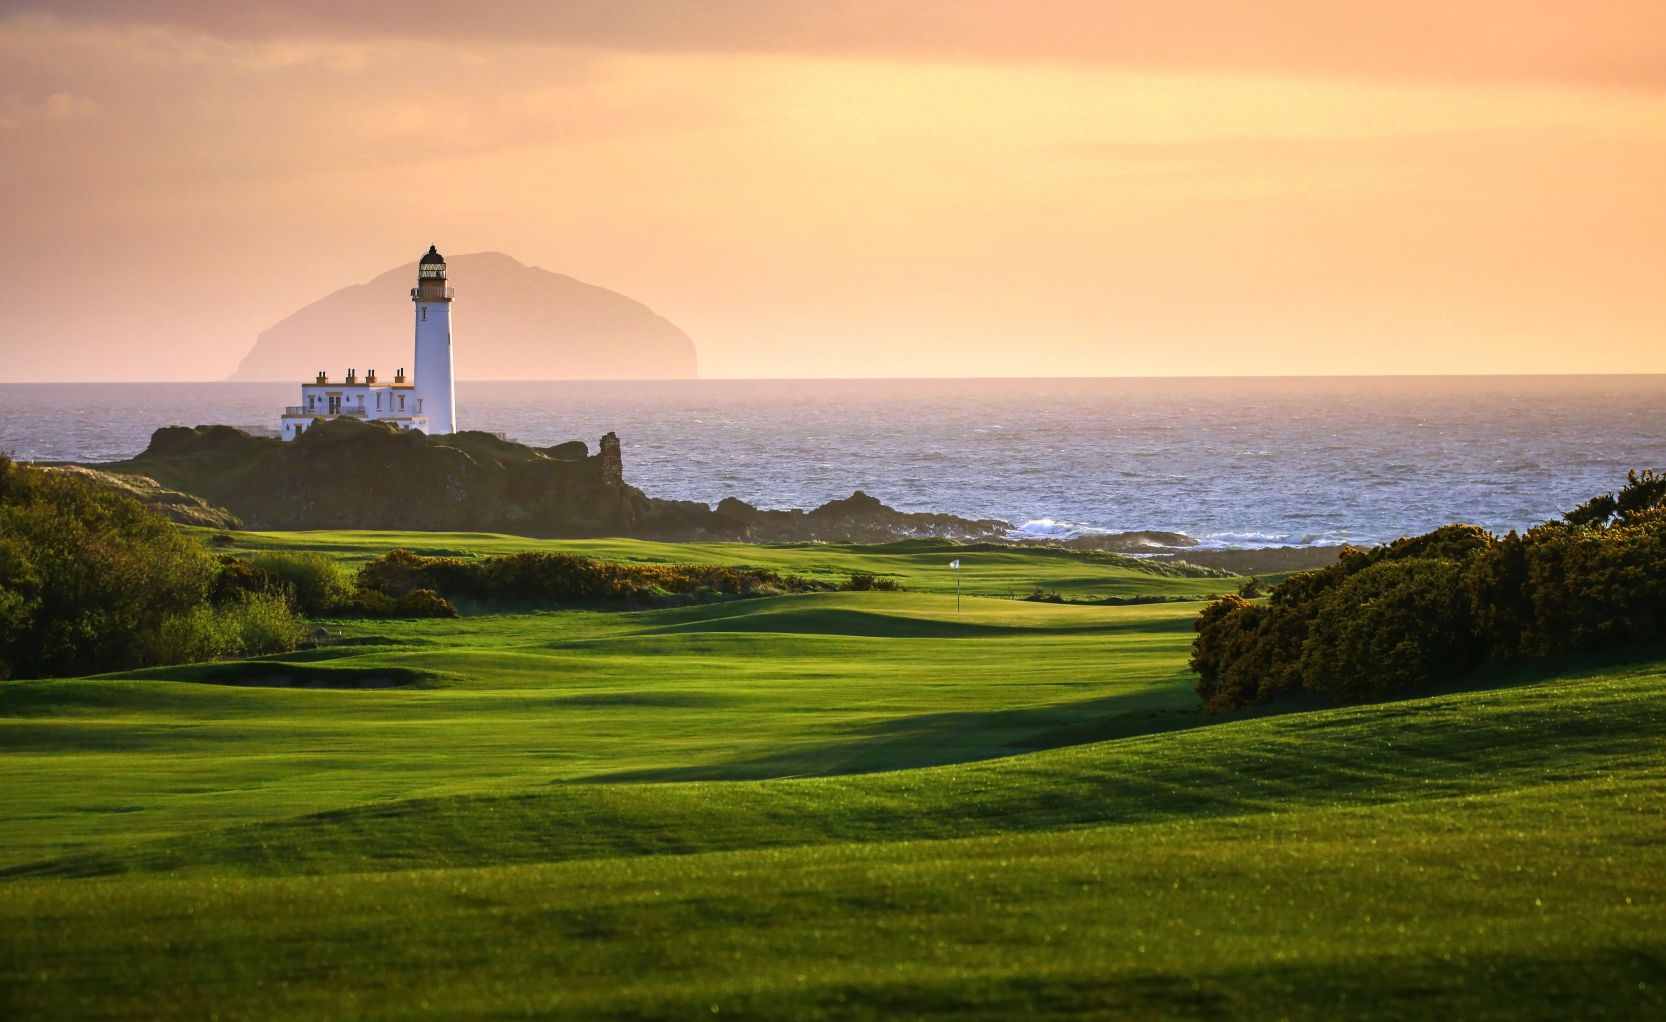 golf course and lighthouse